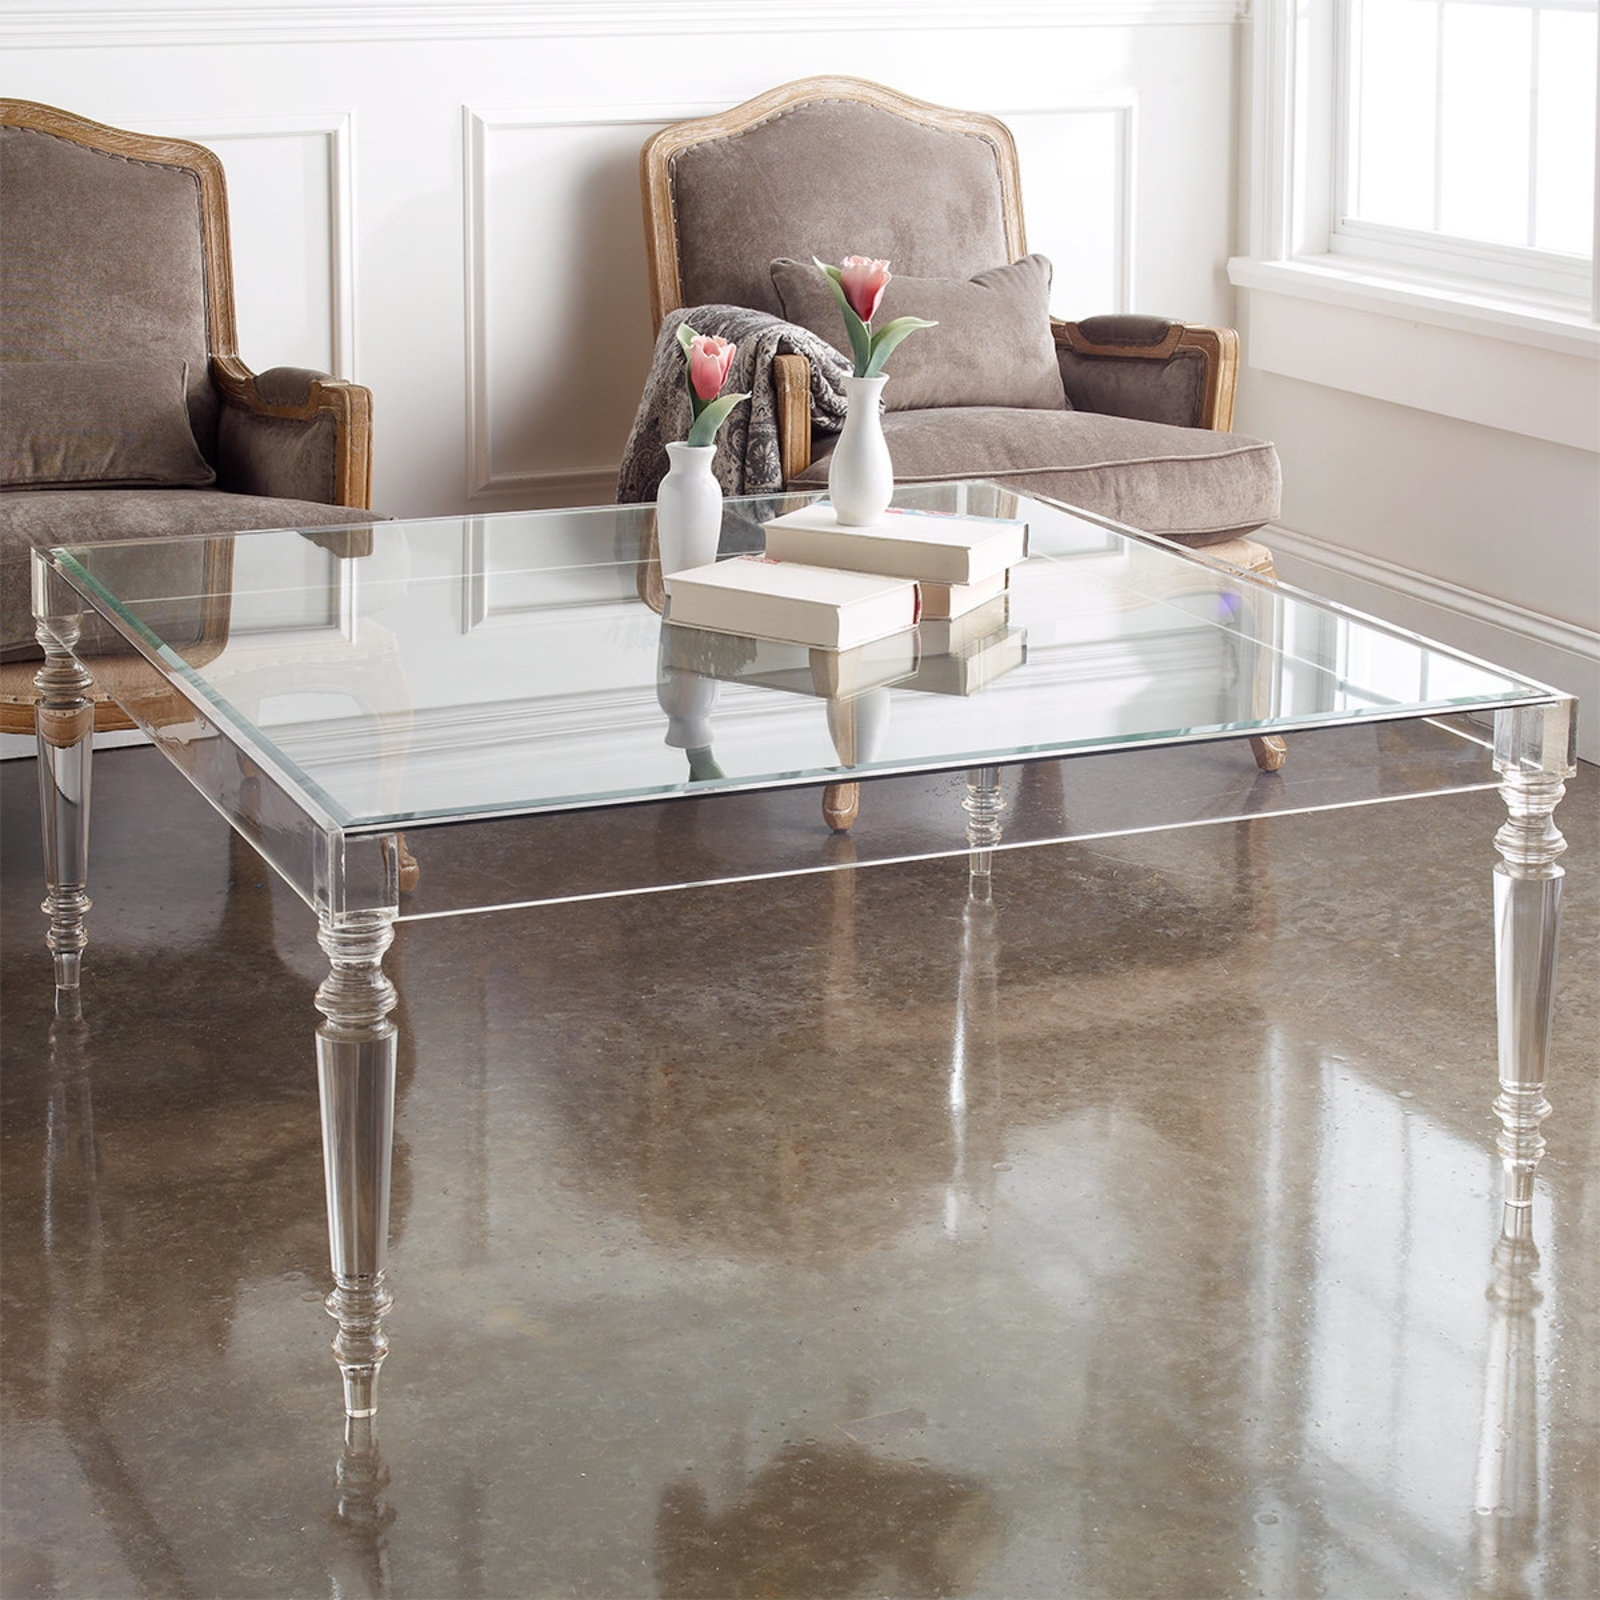 10 Inspiring Acrylic Coffee Table For Your Lovely Home with Acrylic Glass and Brass Coffee Tables (Image 1 of 30)